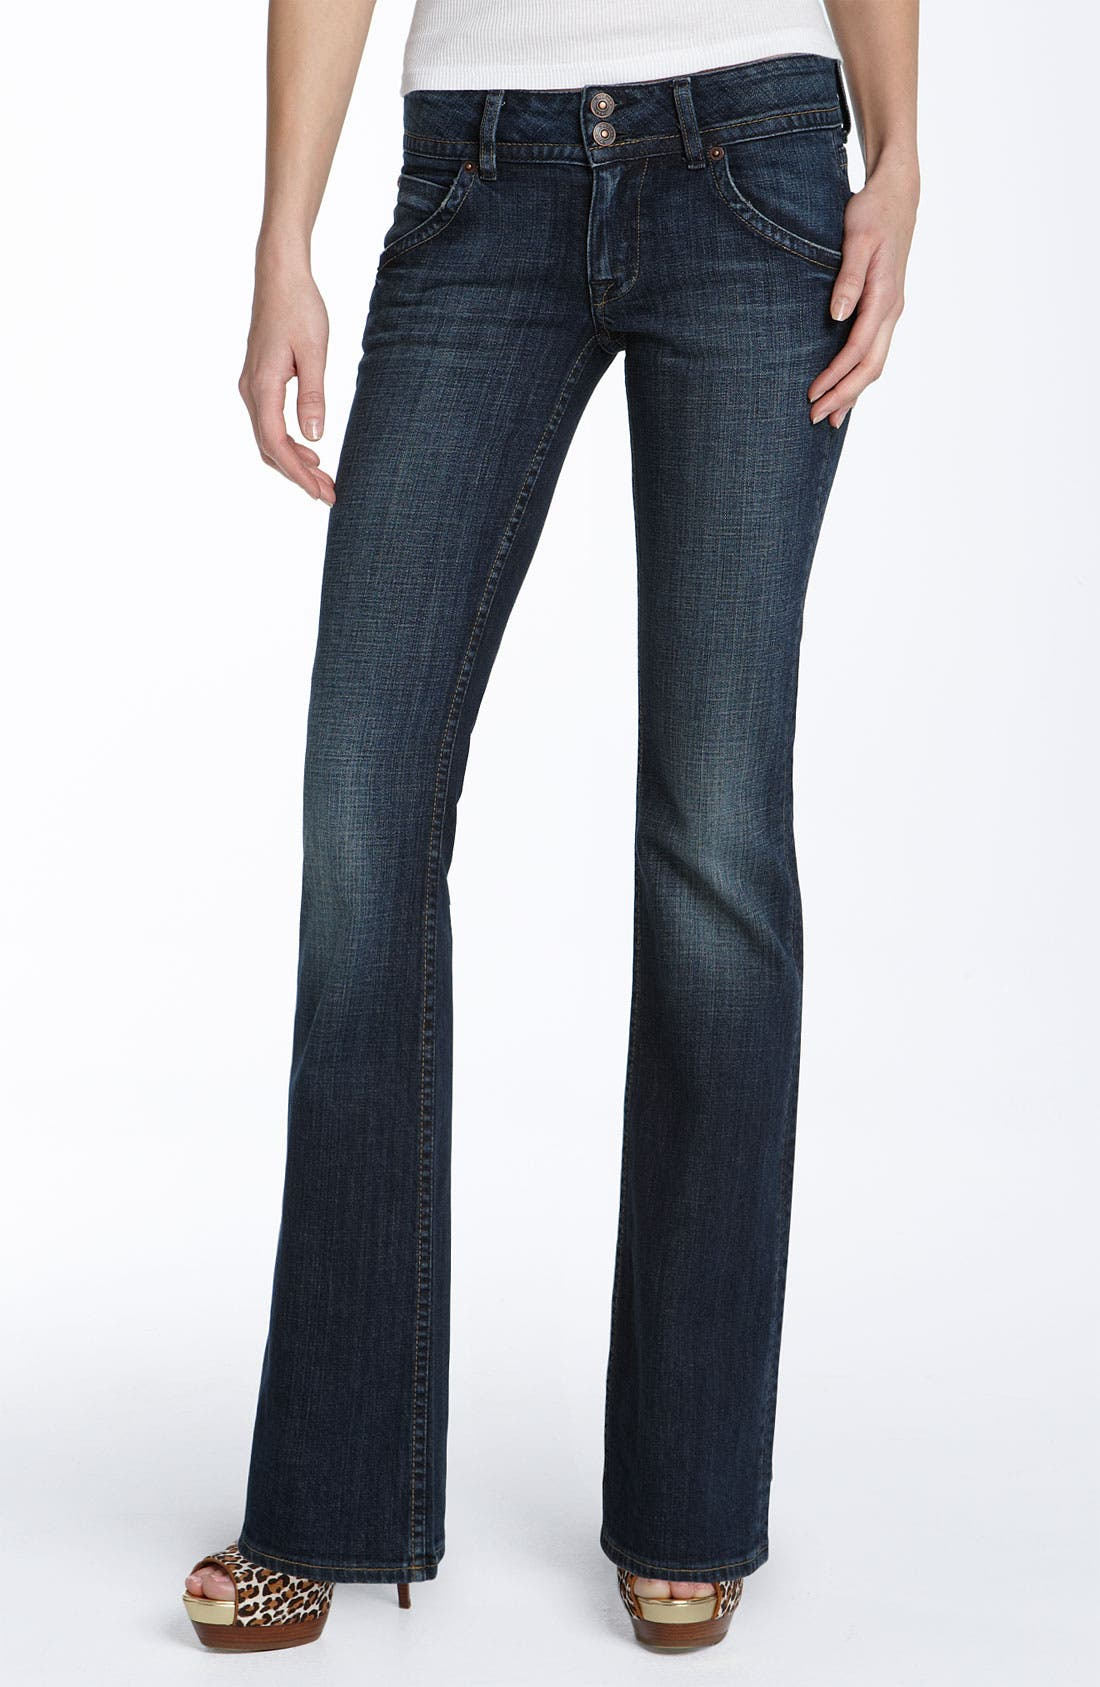 Alternate Image 1 Selected - Hudson Jeans Triangle Pocket Bootcut Stretch Jeans (Weiss Wash)